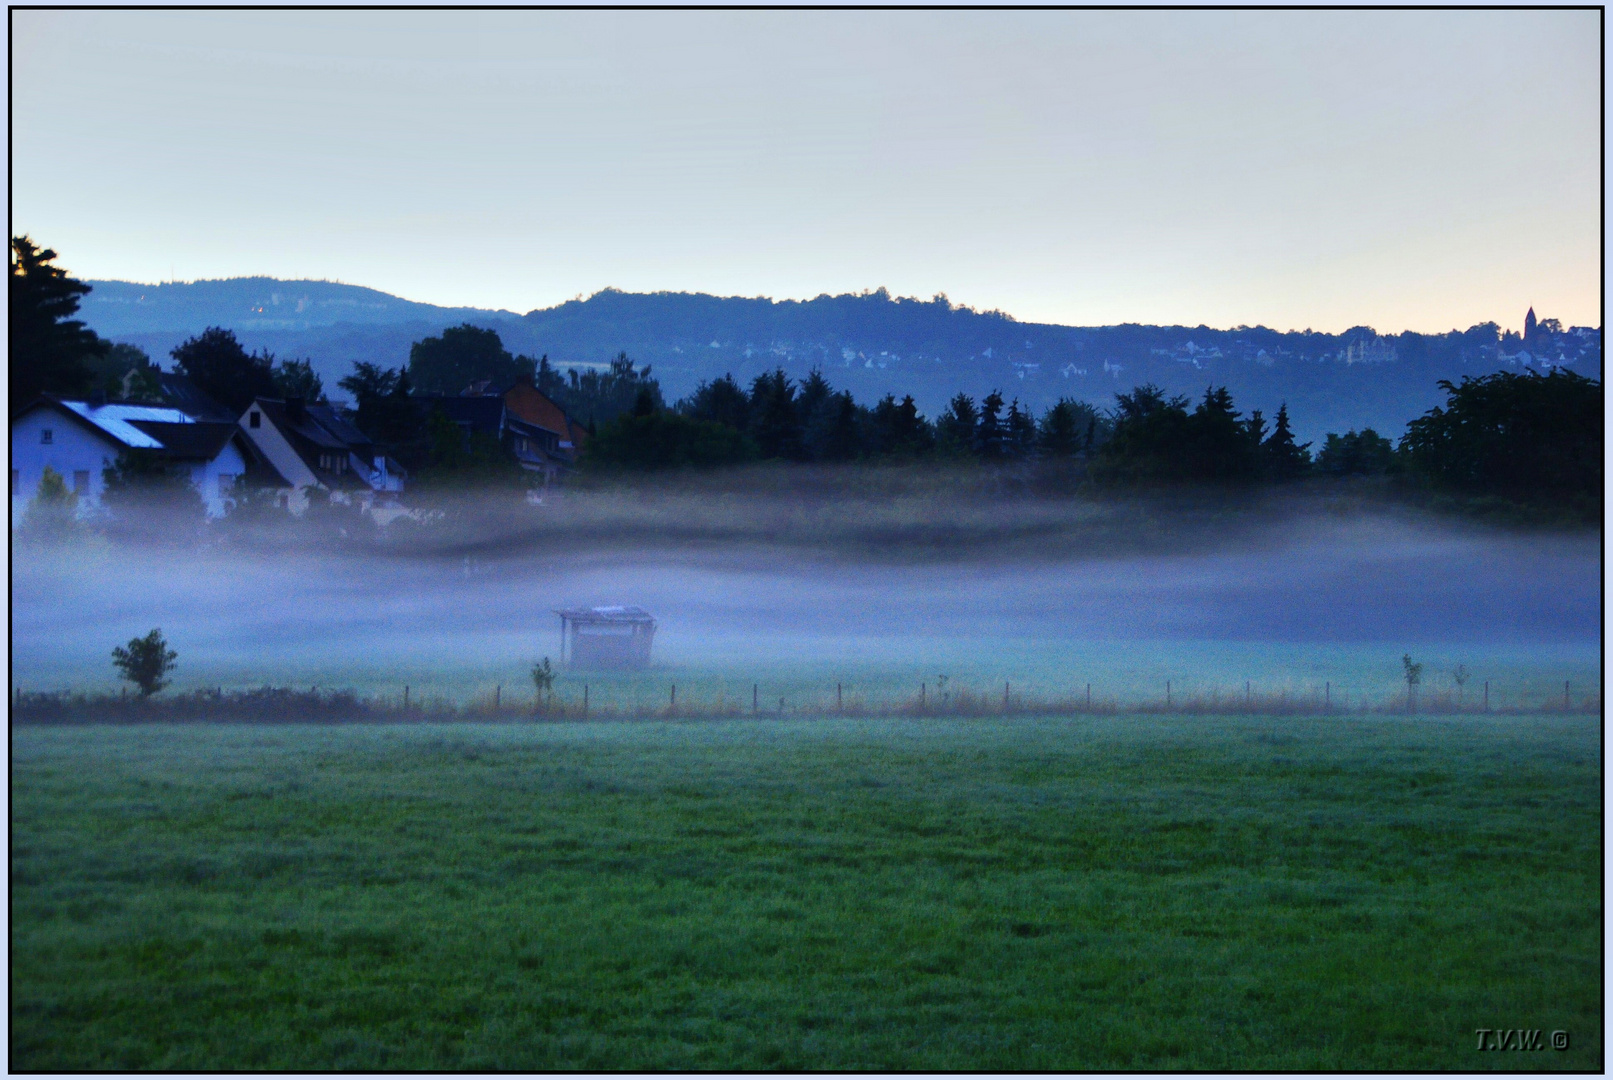 The morning awakening in the country